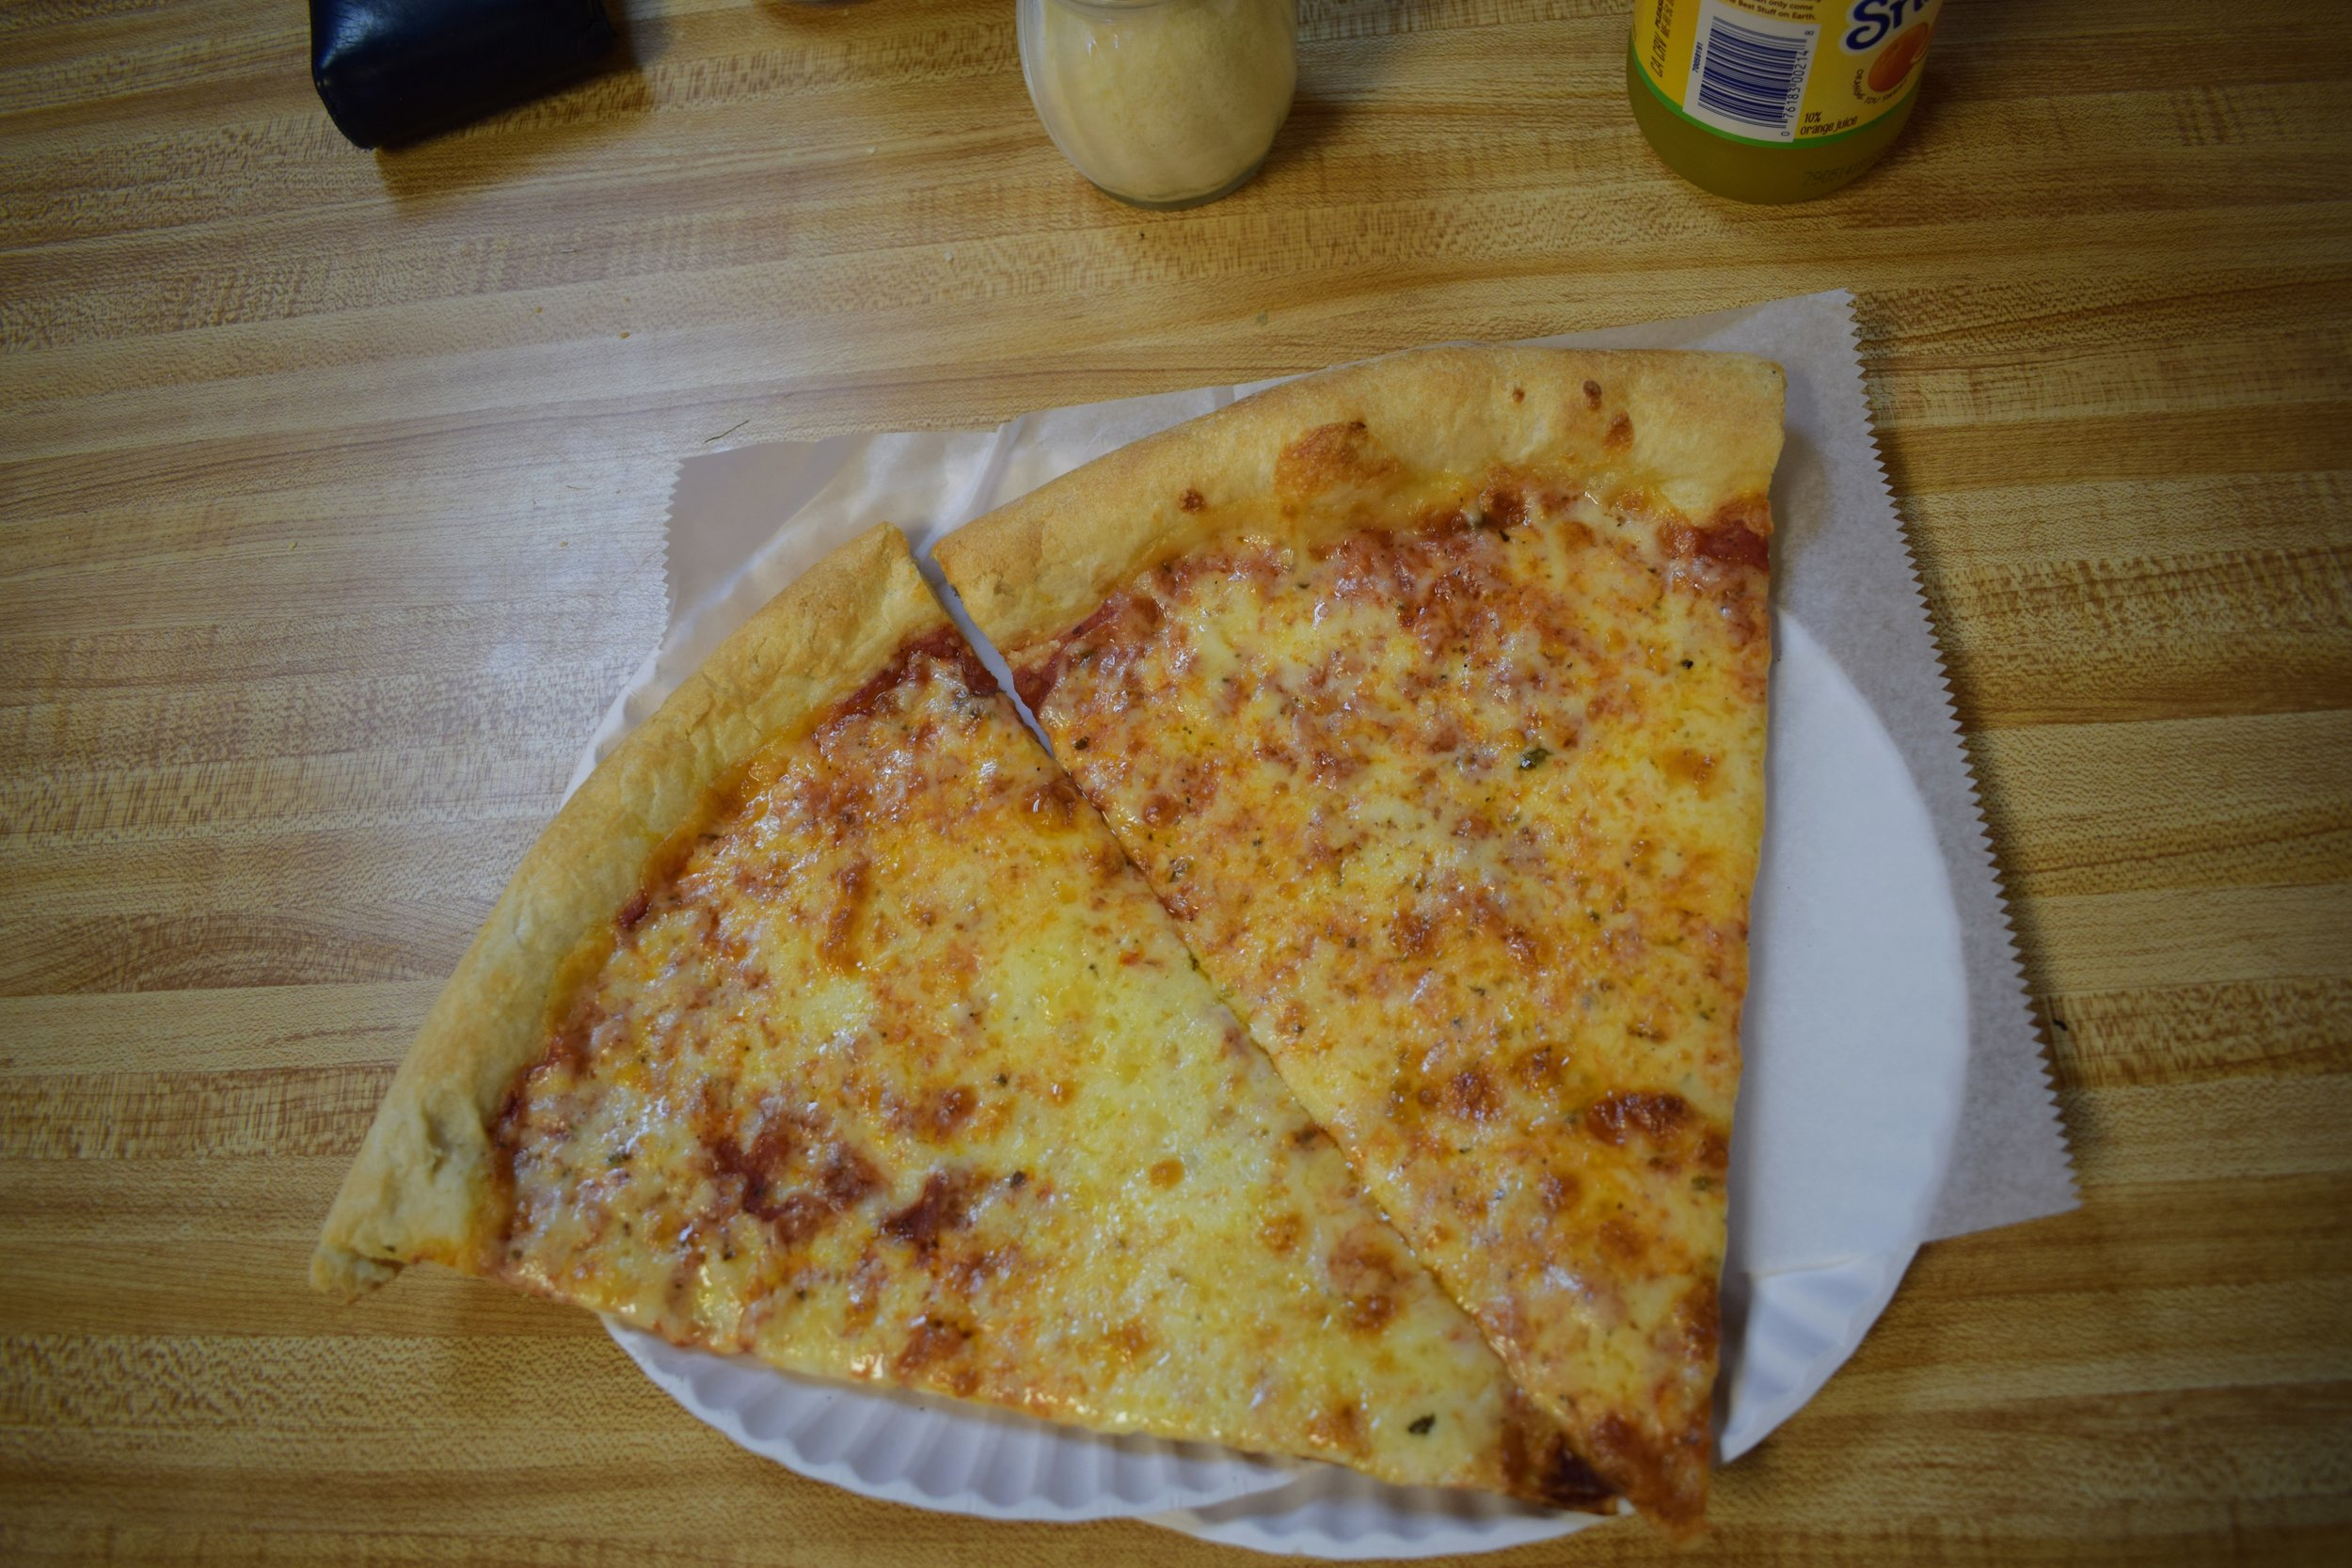 Two cheese slices from Vinnie's Pizzeria in Brooklyn.